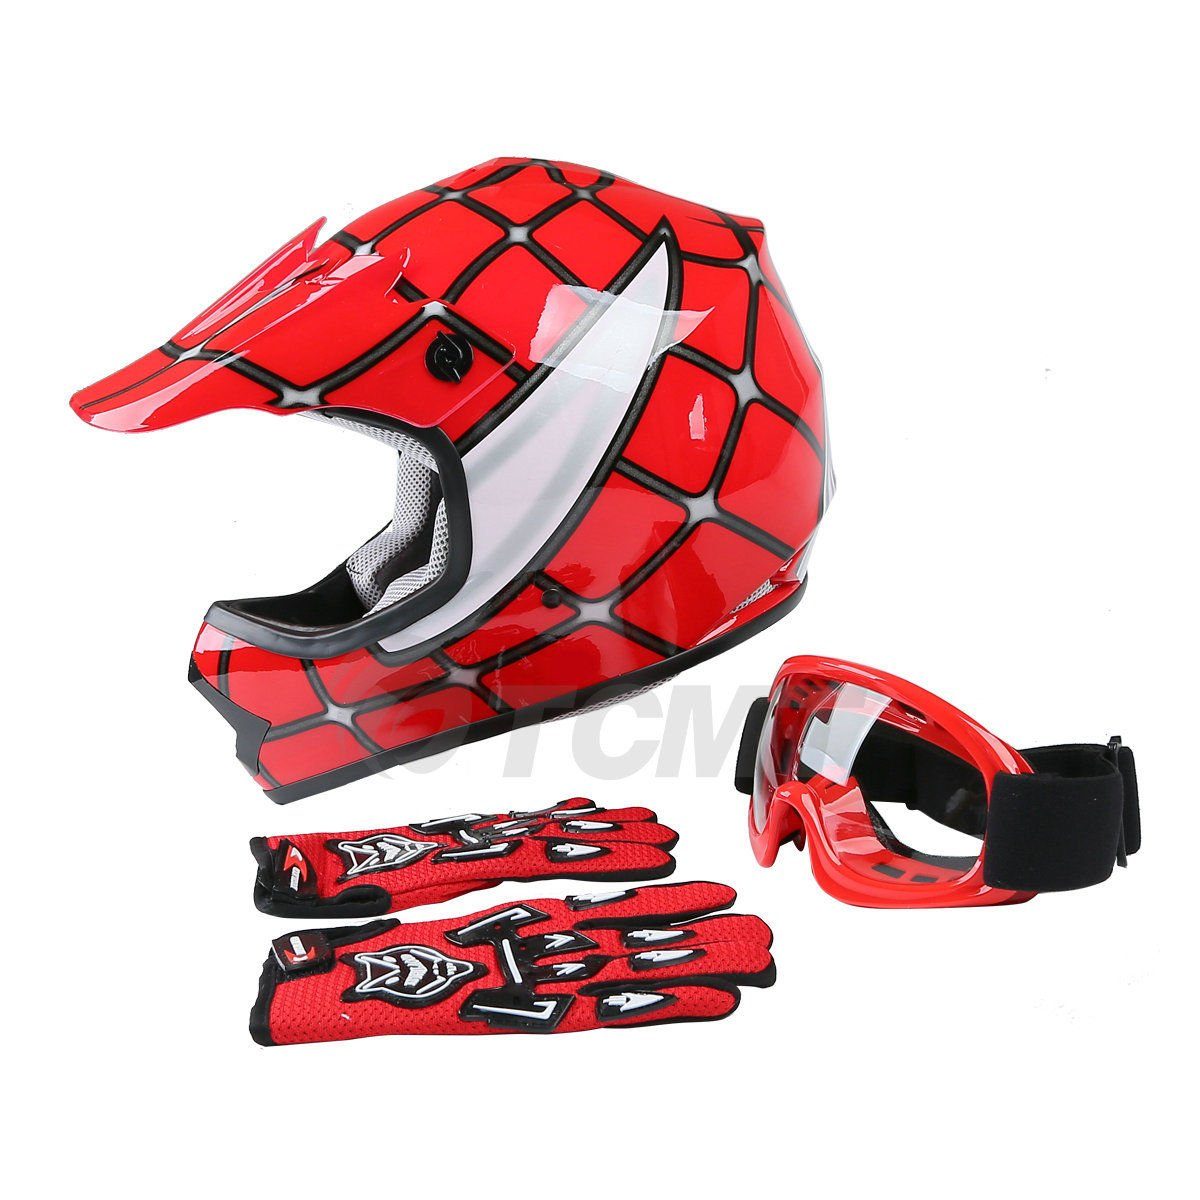 TCMT Dot Youth & Kids Motocross Offroad Street Helmet Red Spider Motorcycle Helmet White Dirt Bike Dirt Bike Helmet+Goggles+gloves (XL, Red) XF270214-XL